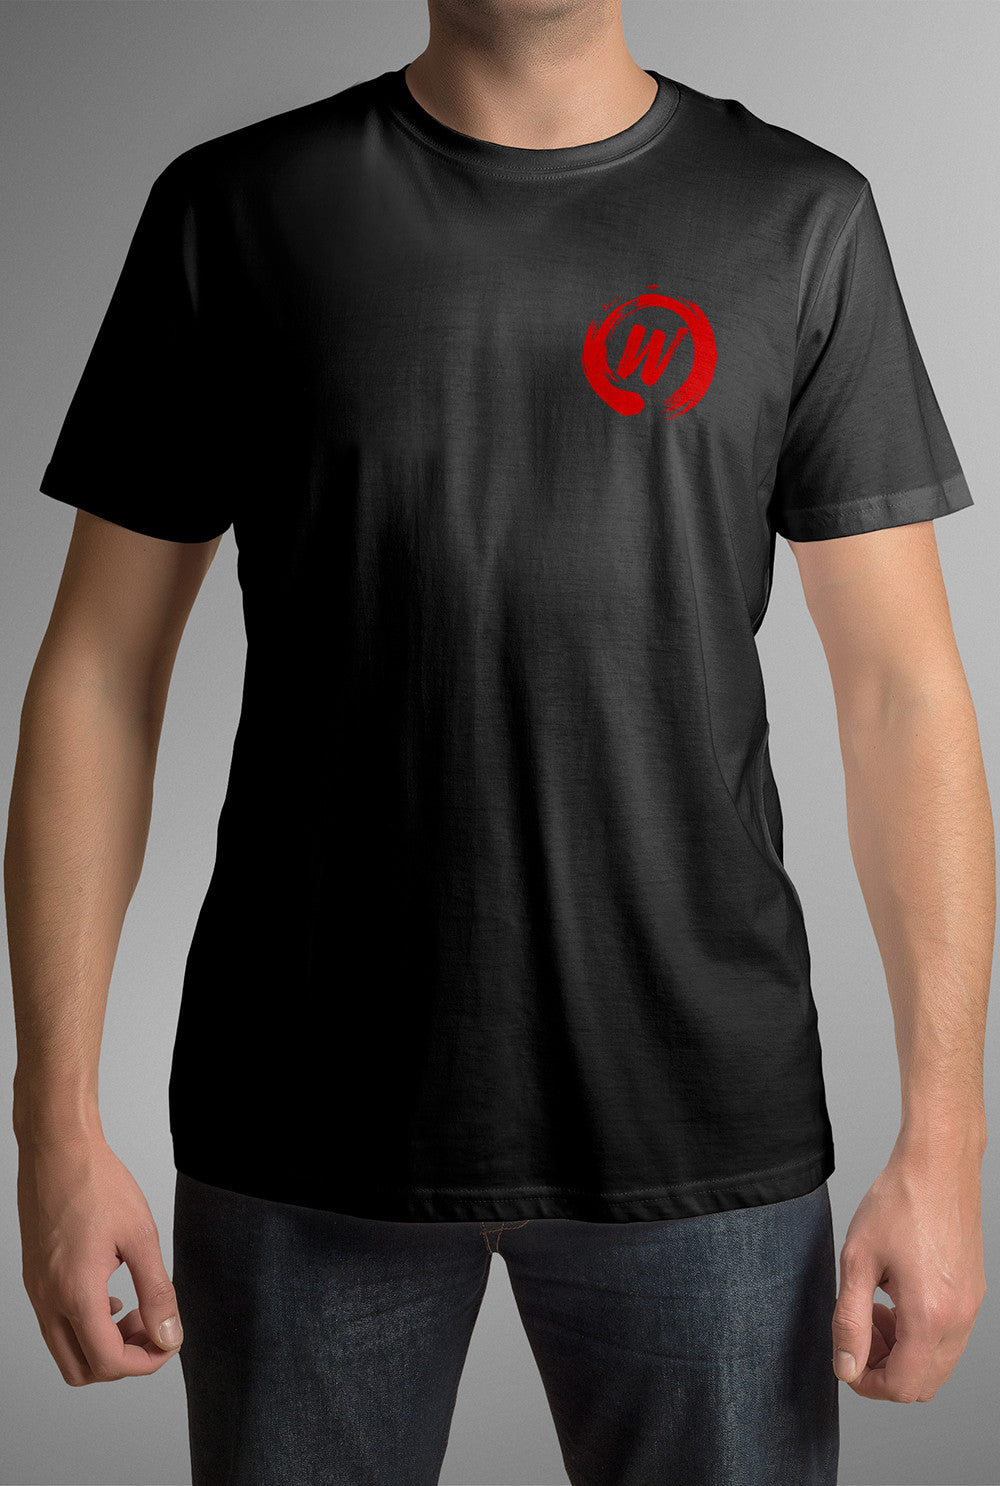 JW SUSHI MENS T SHIRTS Custom T Shirt by Lets Get Shirty Dot Com